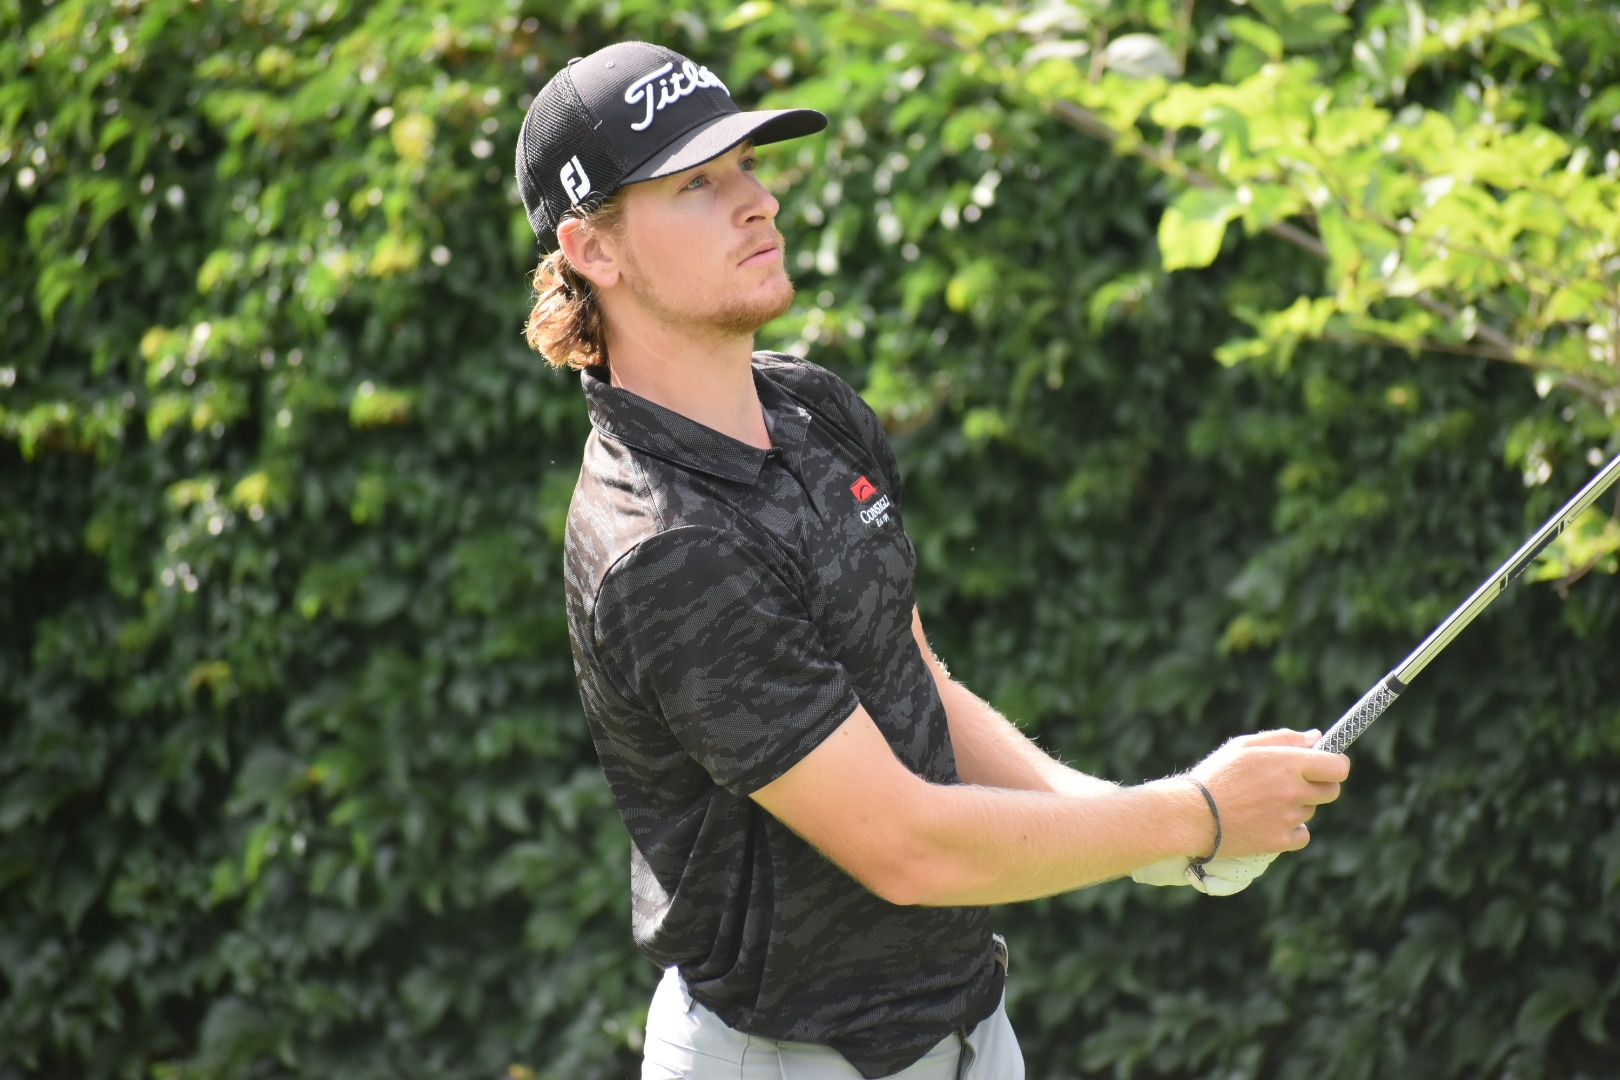 Berberian Brings the Heat in Opening Round of NH Open, Leads Field at Five-Under Par